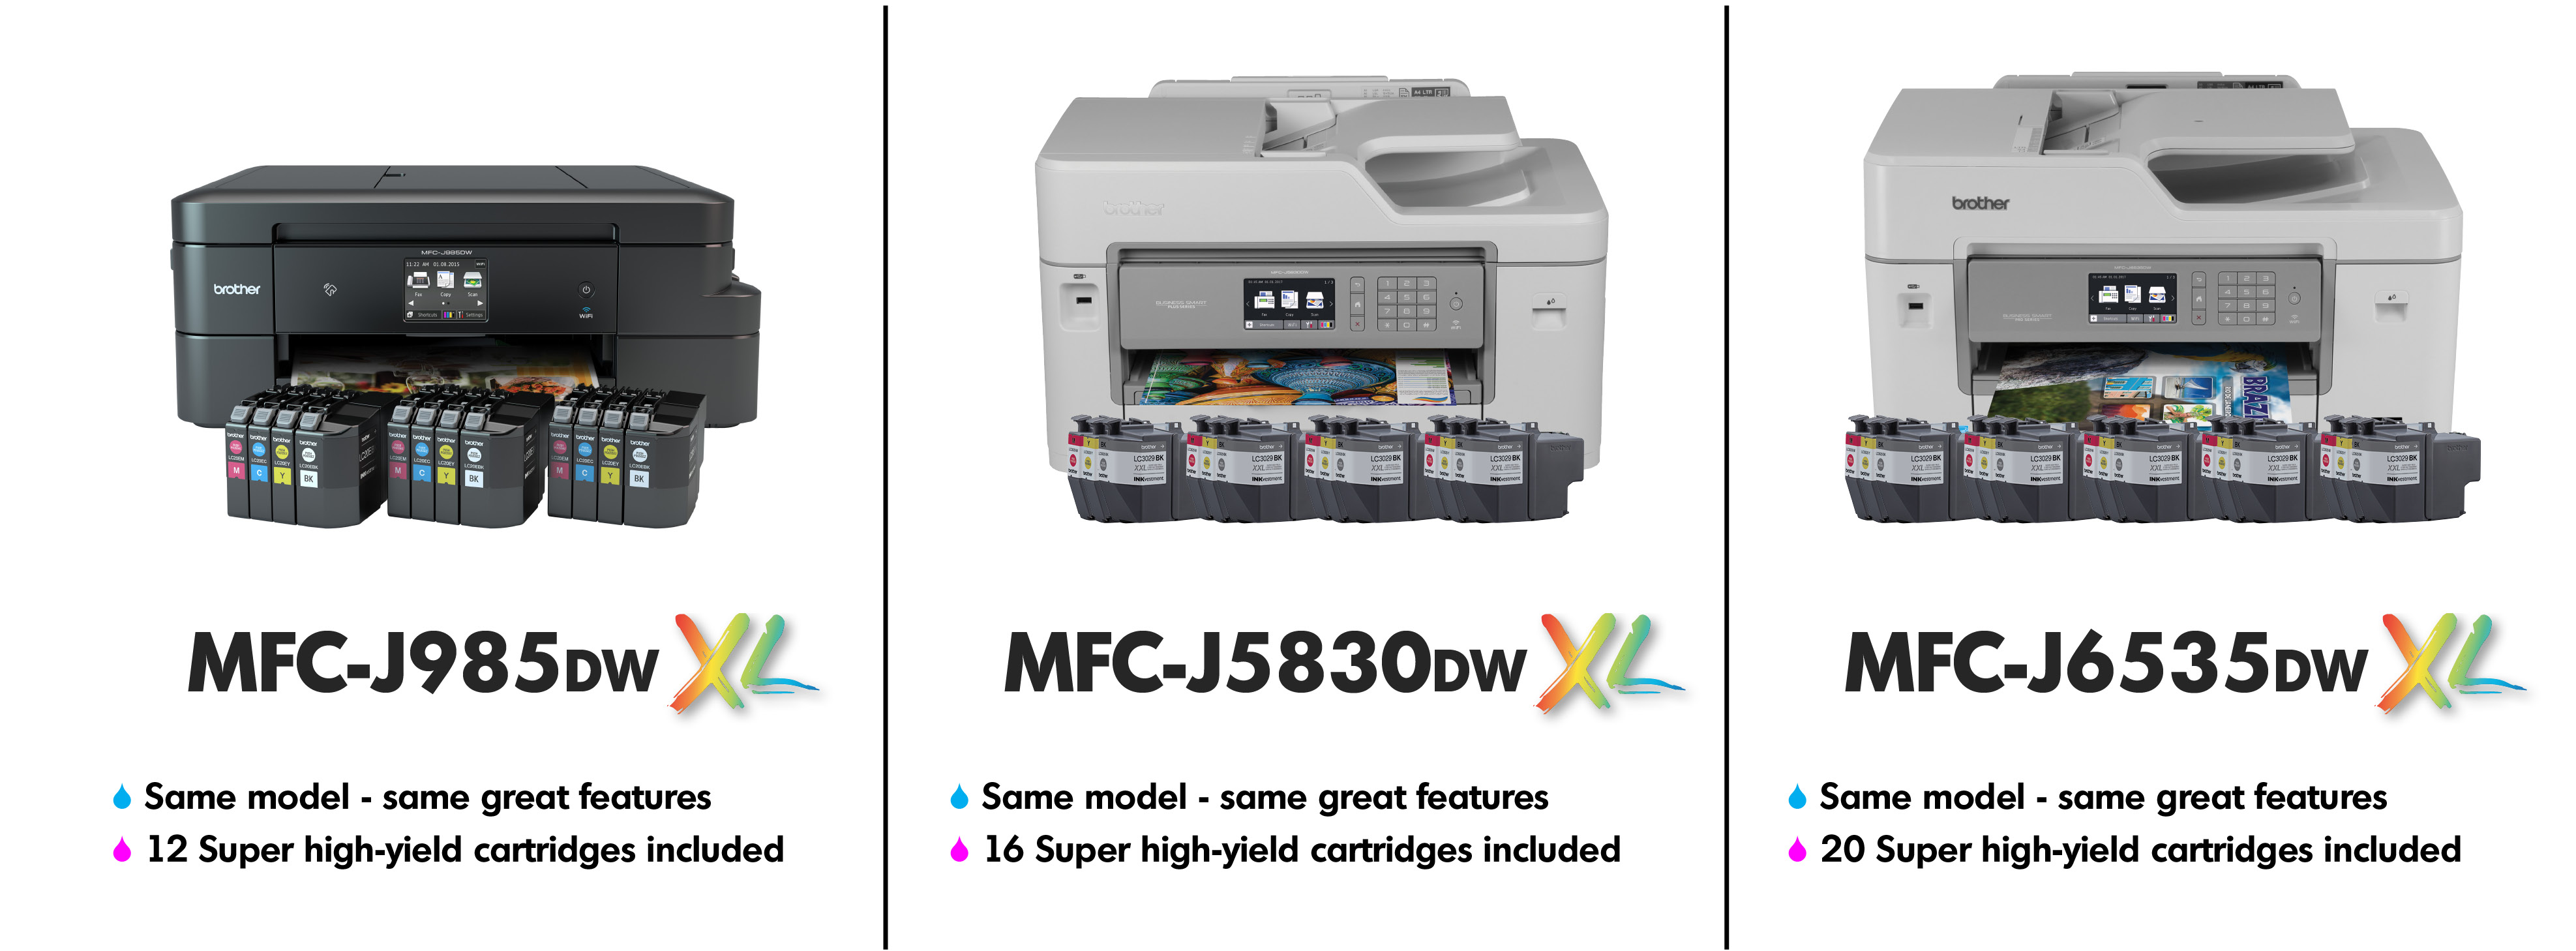 brand officemax mfc printers cm at office depot data all od in inkvestment one brother color